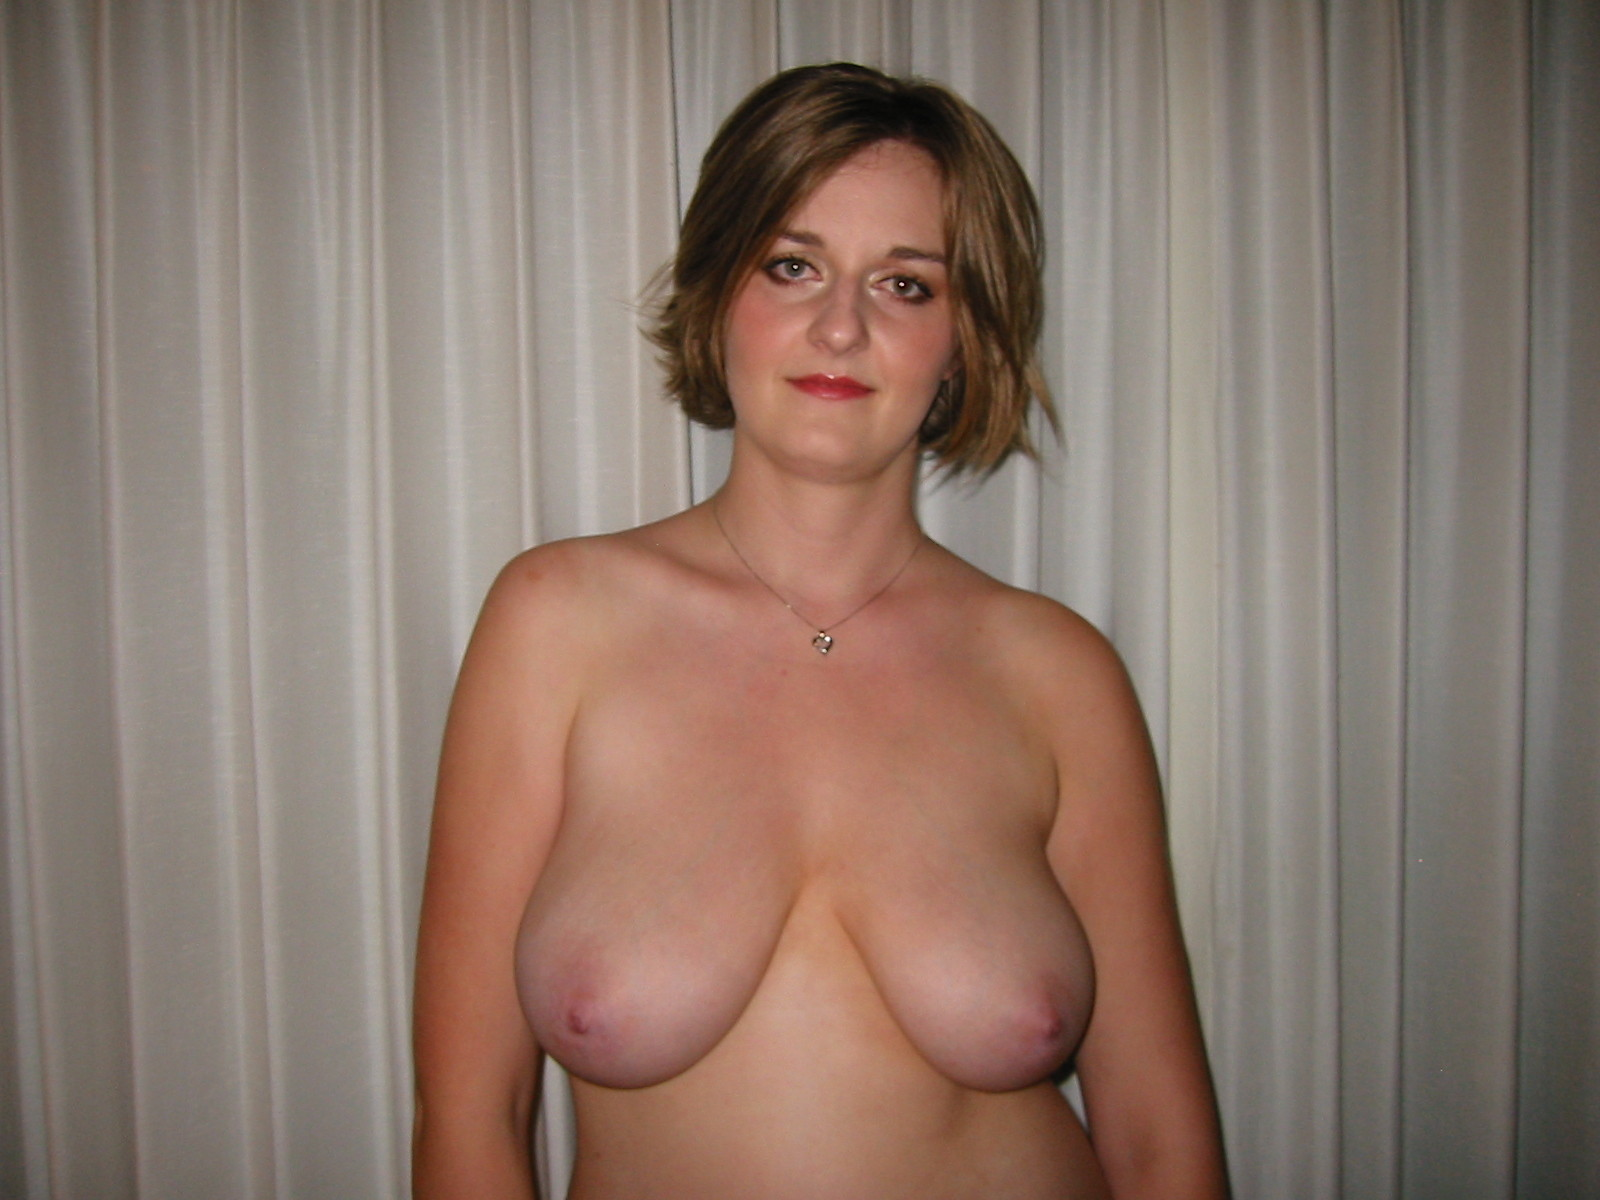 Big Tits Amatures 44